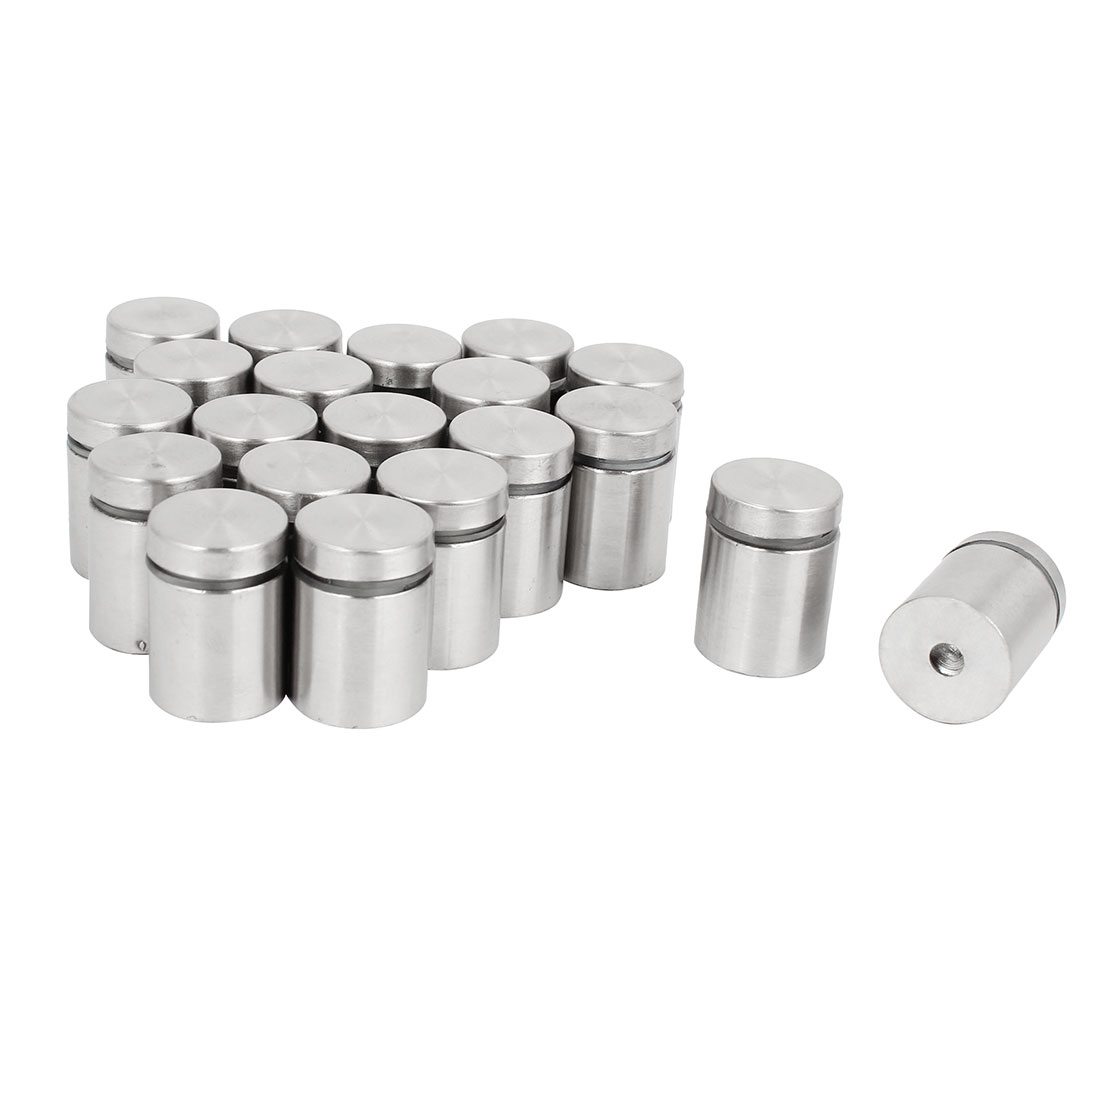 20 Pcs 19 x 25mm Stainless Steel Advertisement Nails Glass Wall Connector Standoff